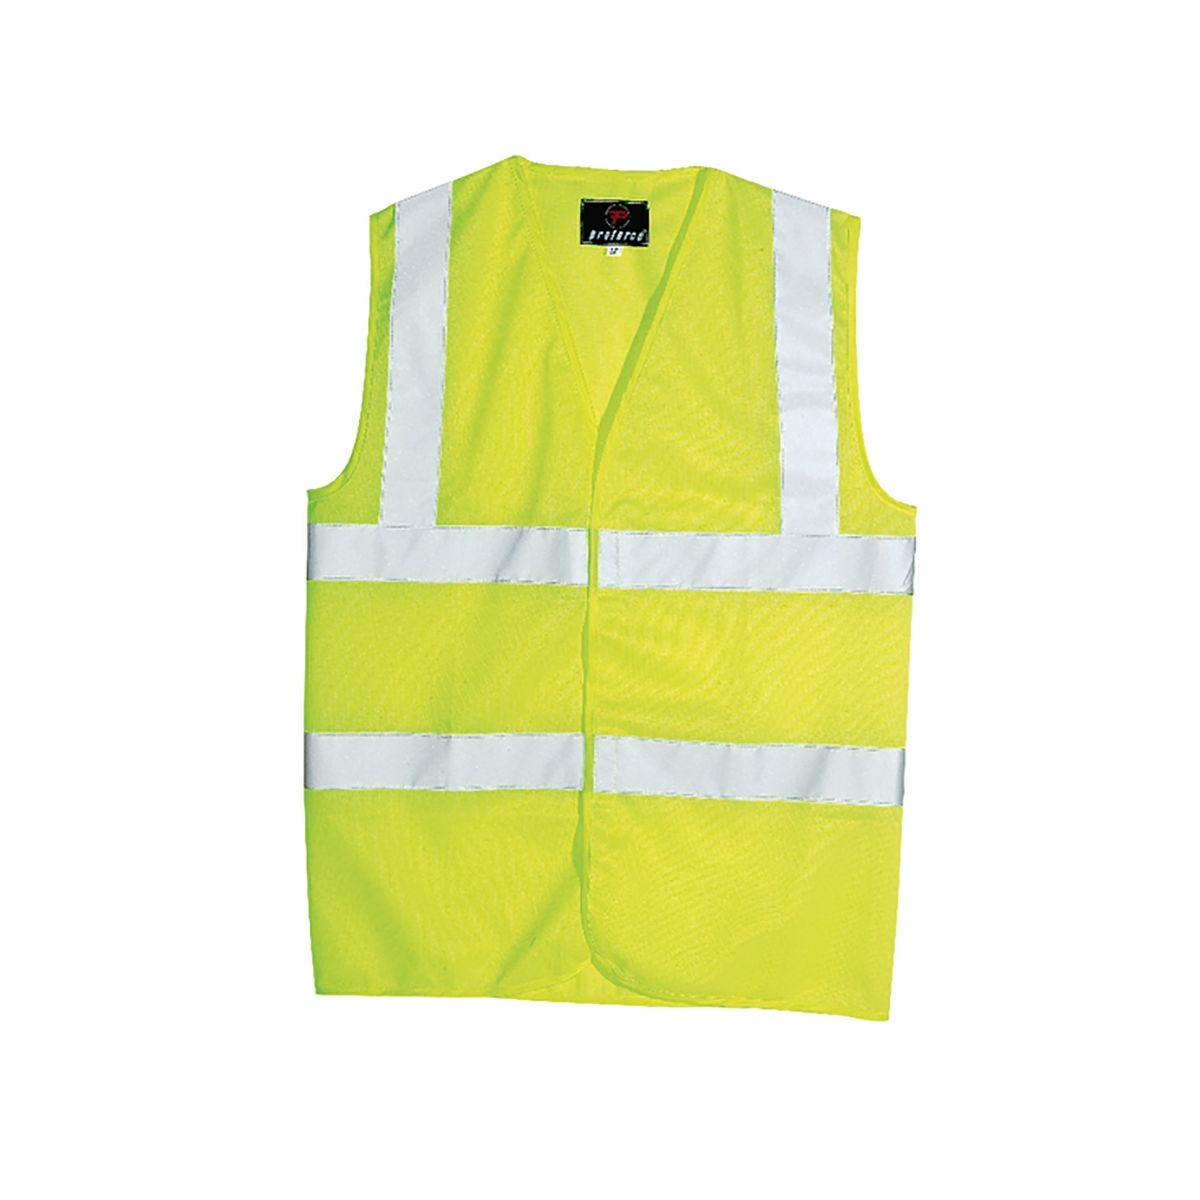 Proforce High Visibility Vest Class 2 Large Yellow, Yellow